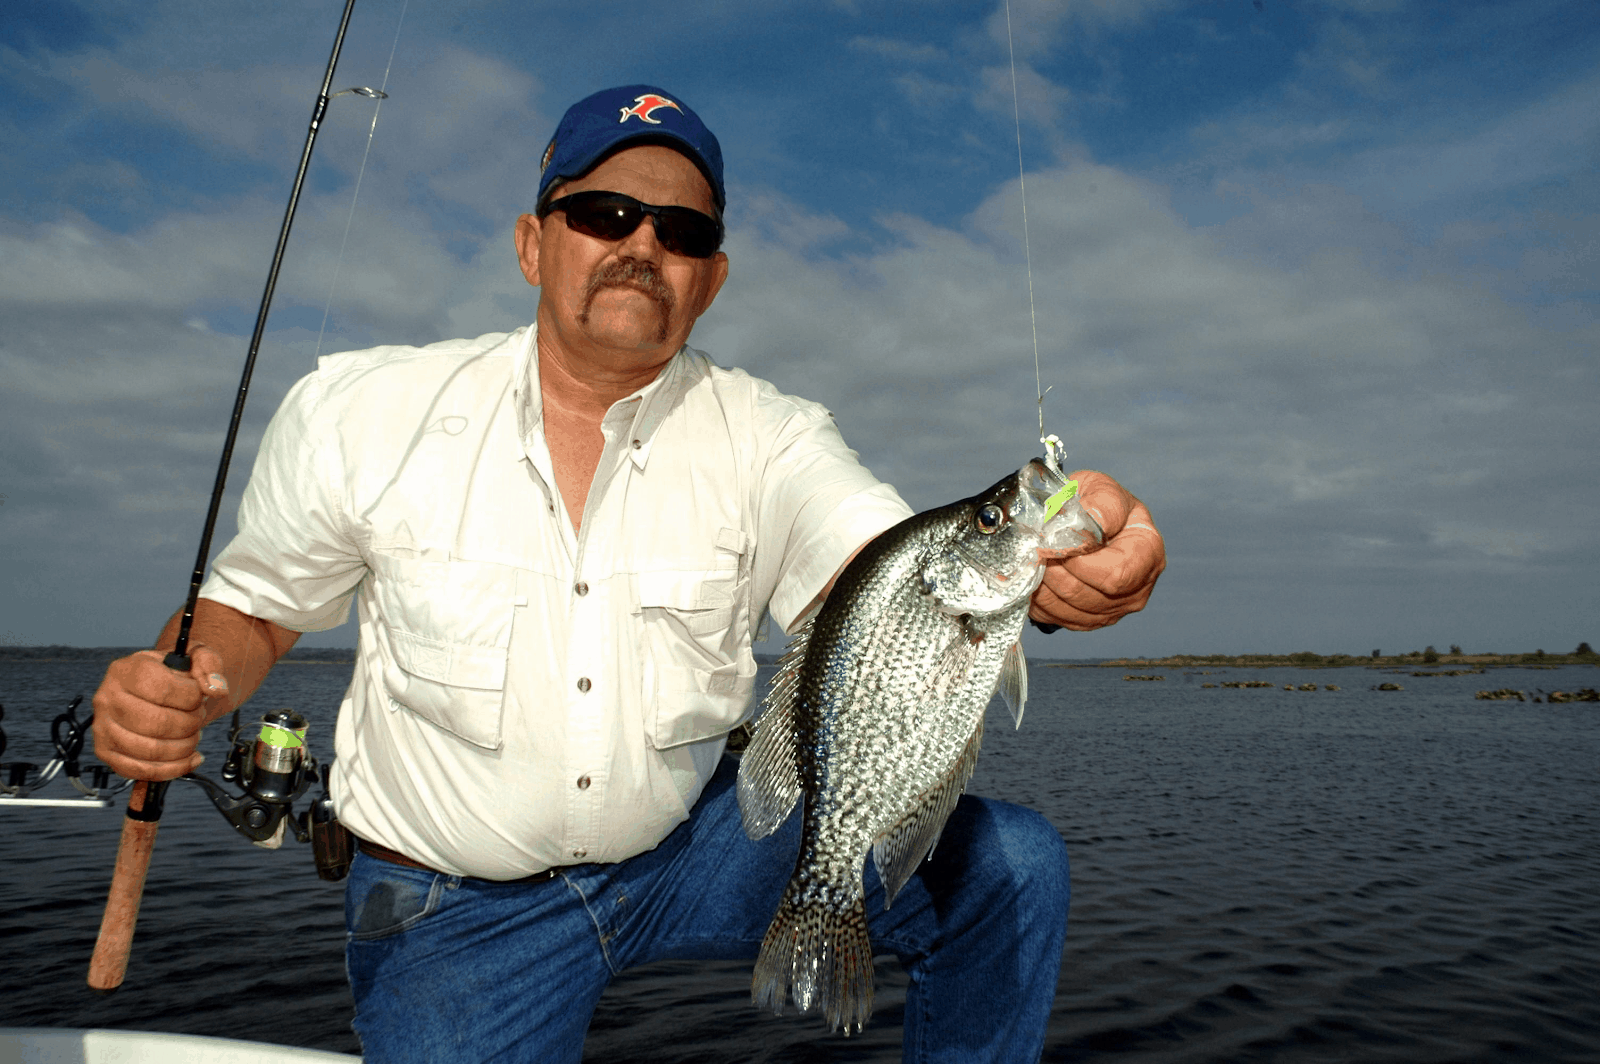 Best Crappie Rod And Reel Combos Reviewed For 2021